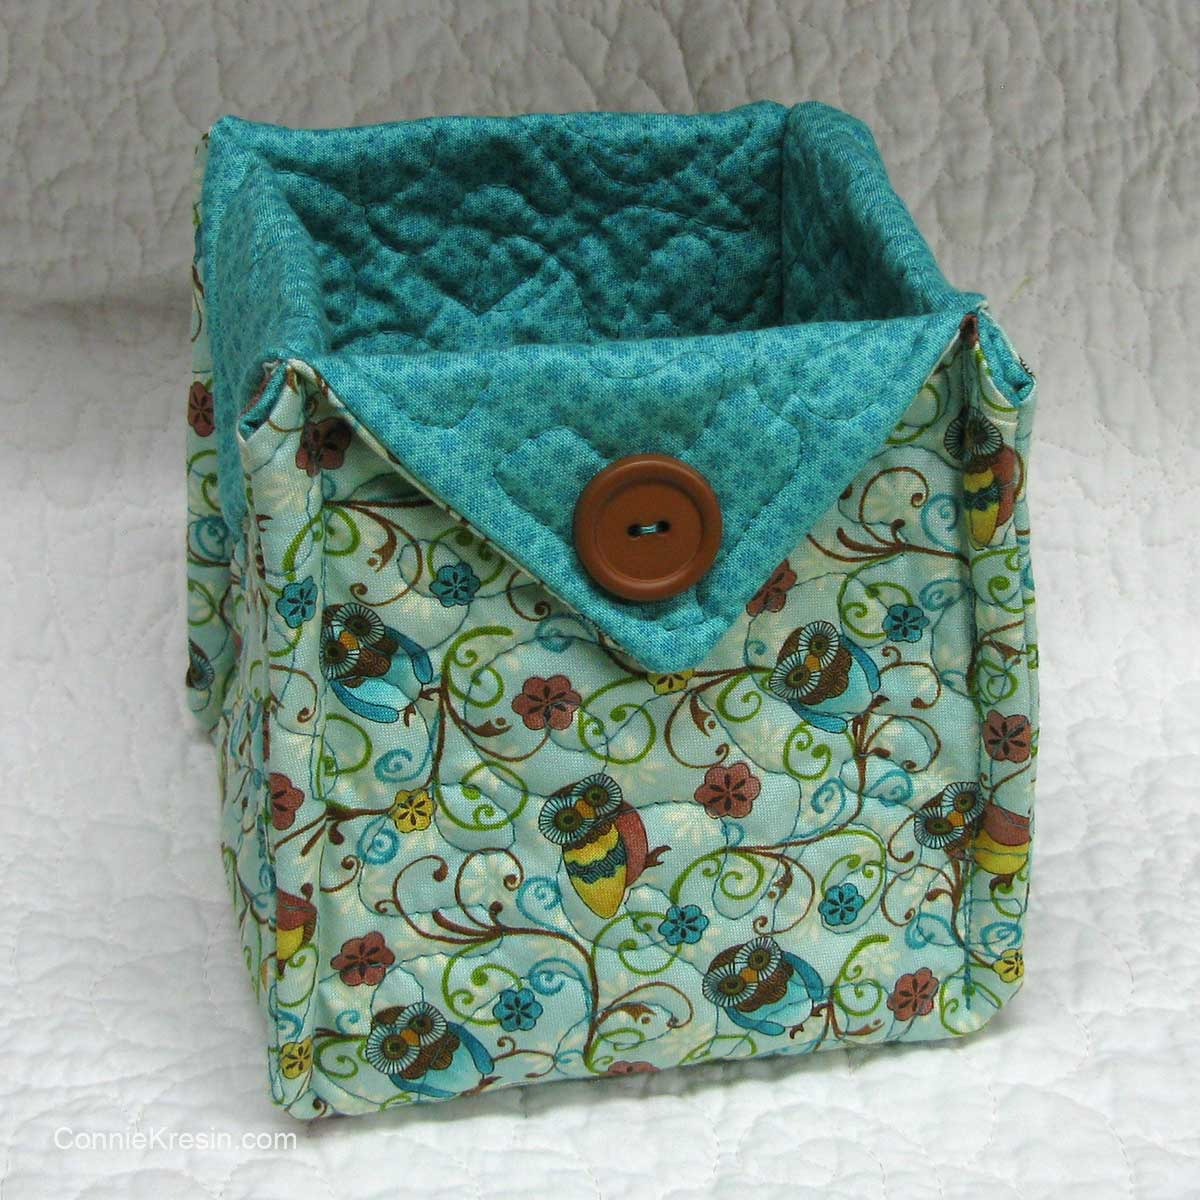 Teal fabric basket